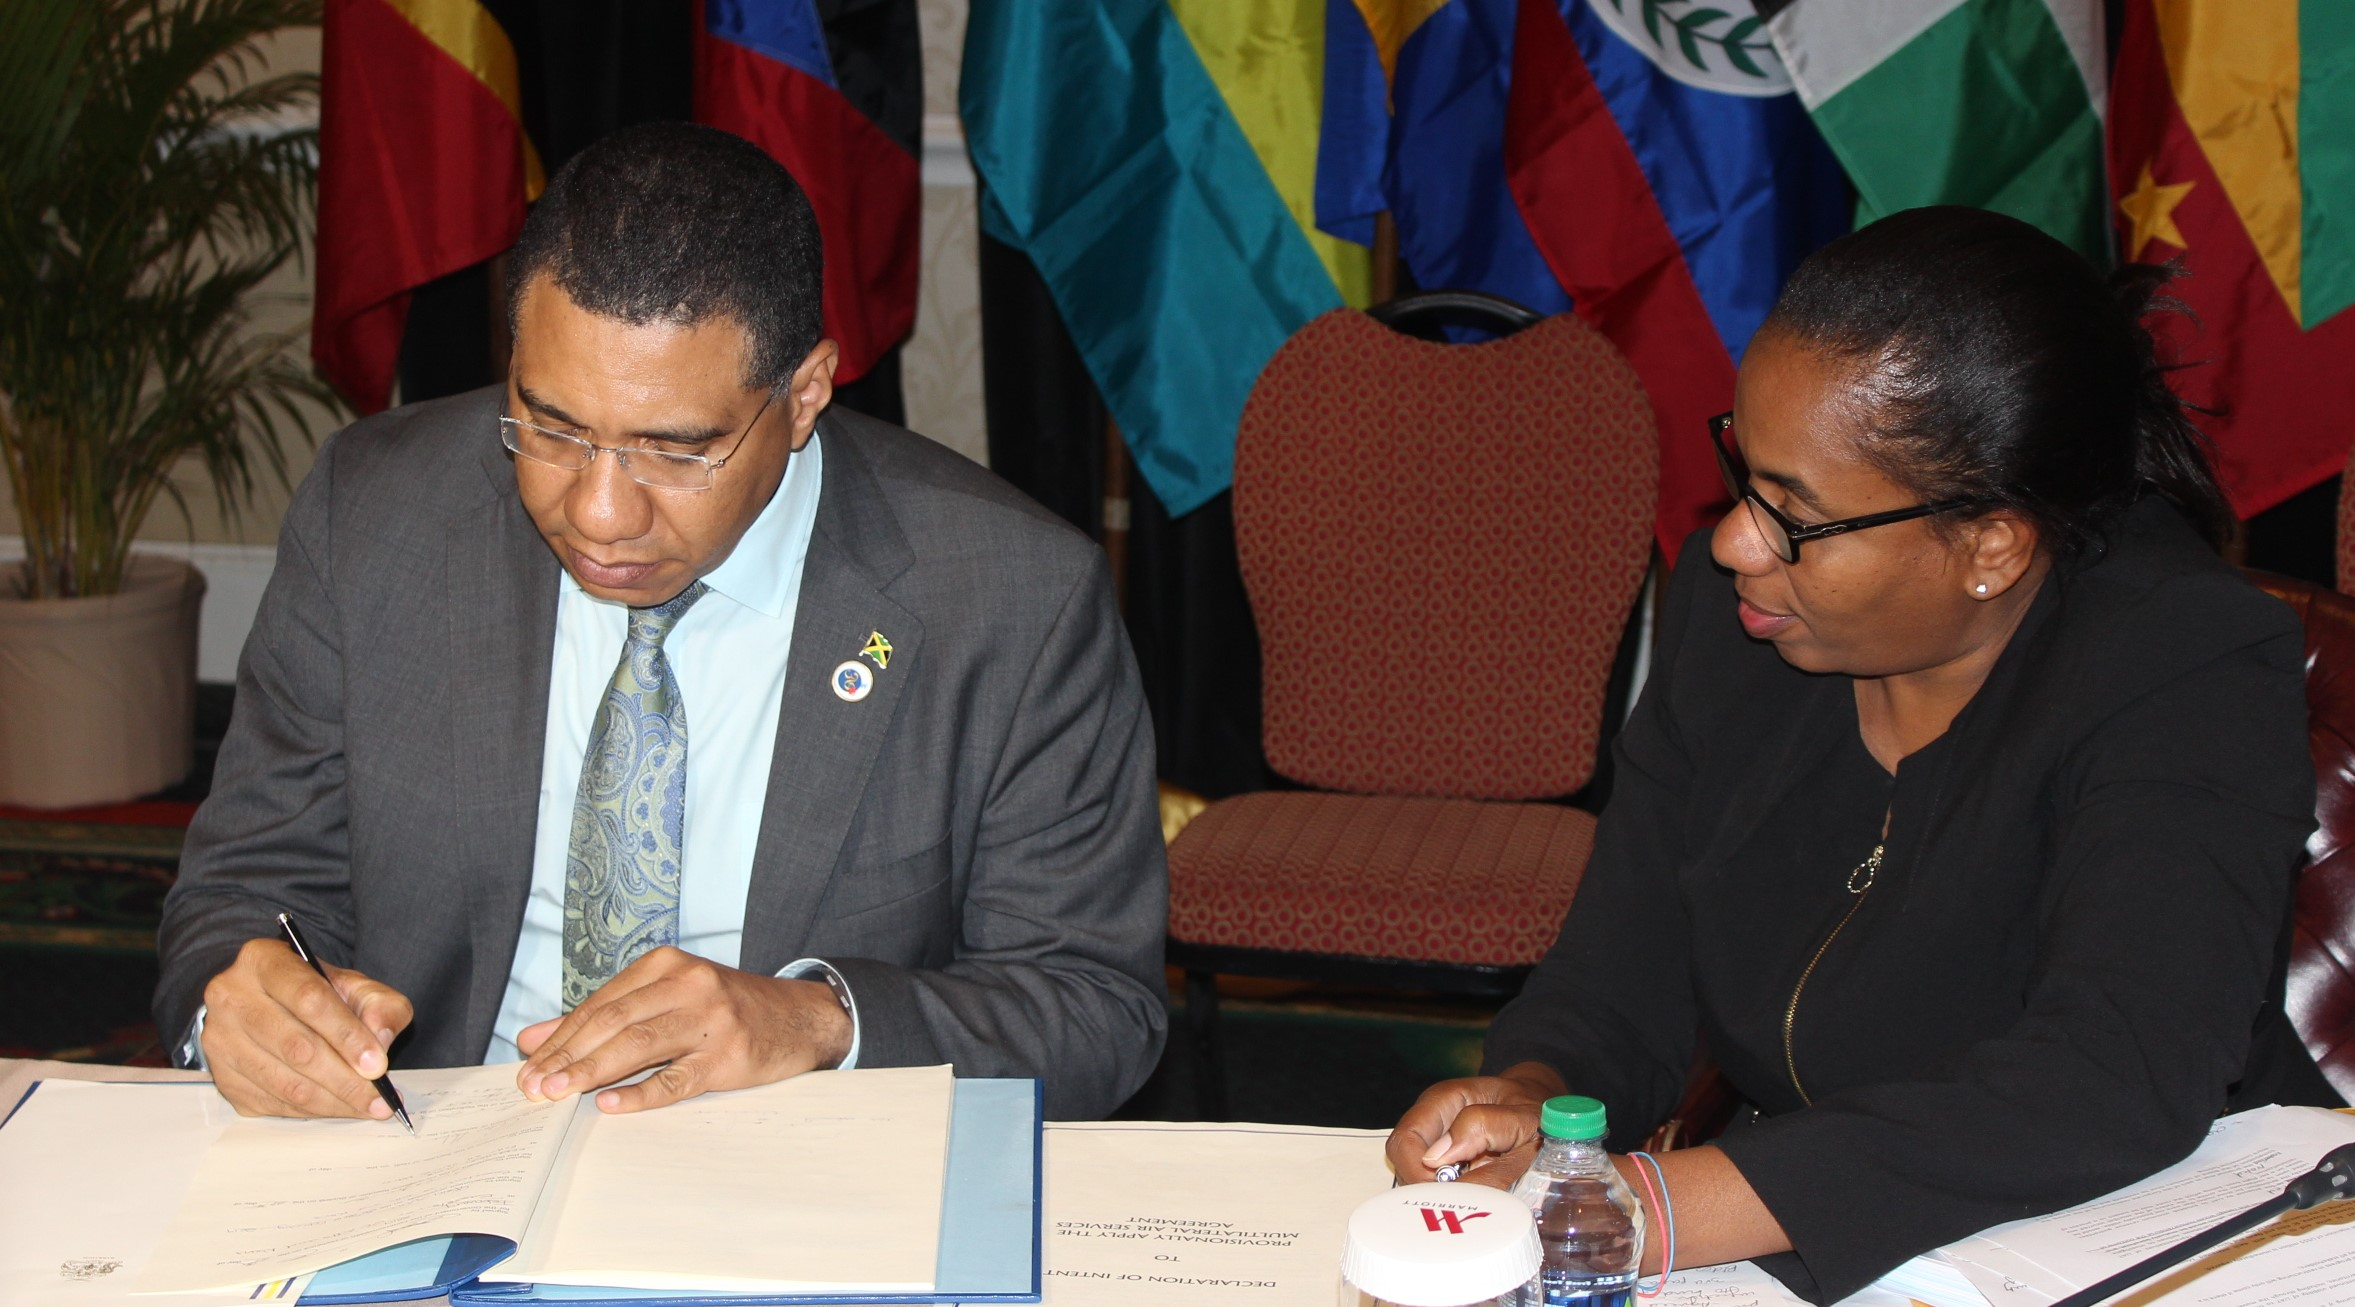 Prime Minister Andrew Holness signing